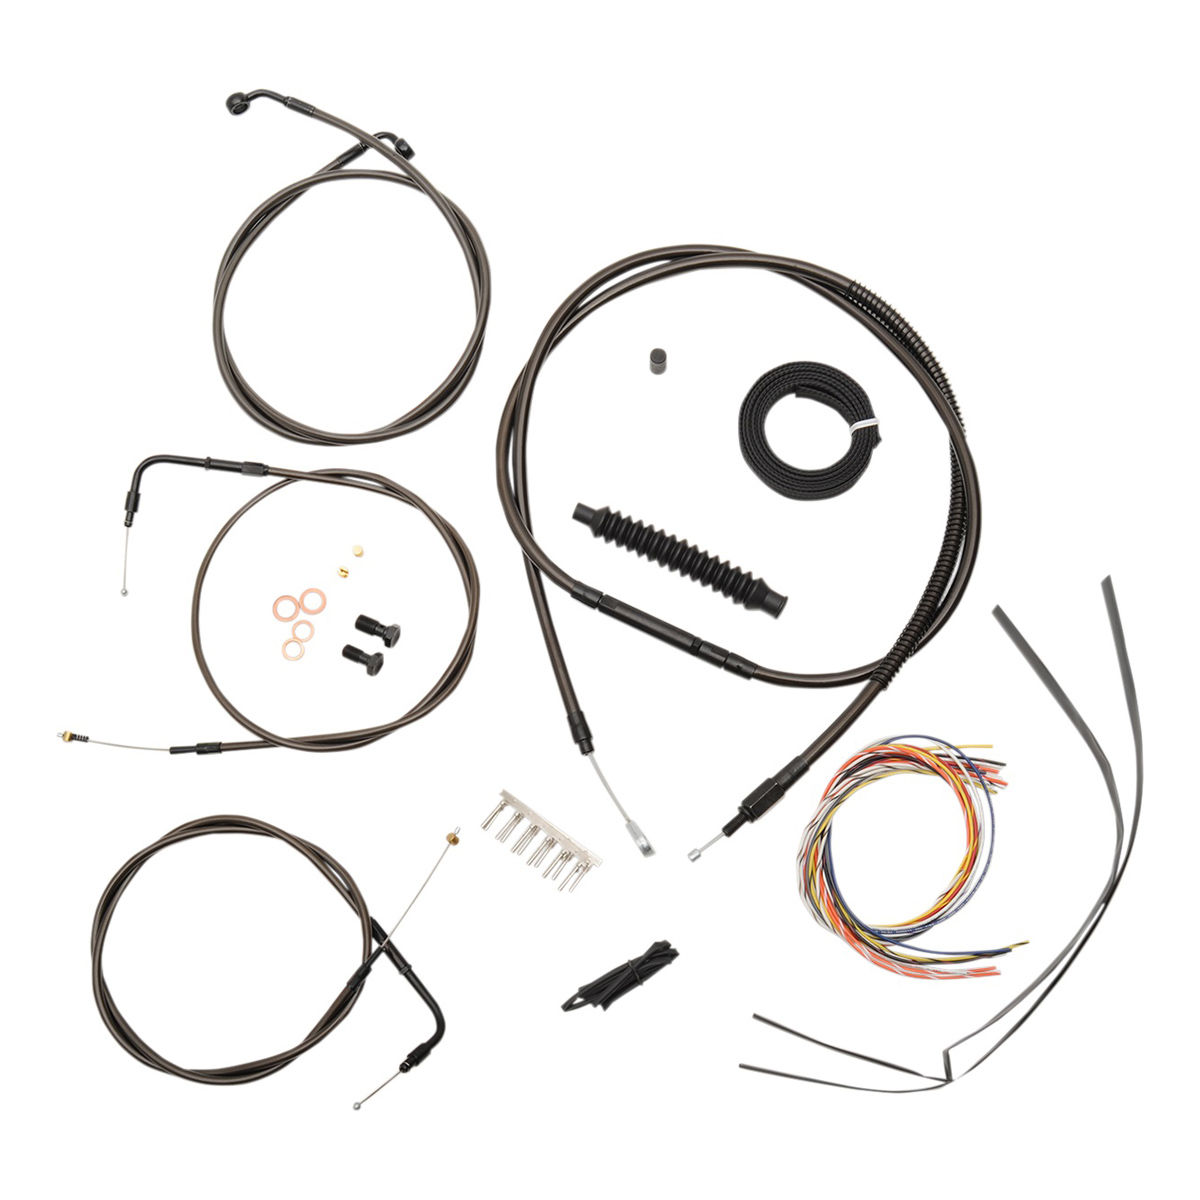 LA Choppers Midnight Complete Cable/Line/Wiring Handlebar Kit for 18″-20″ Bars